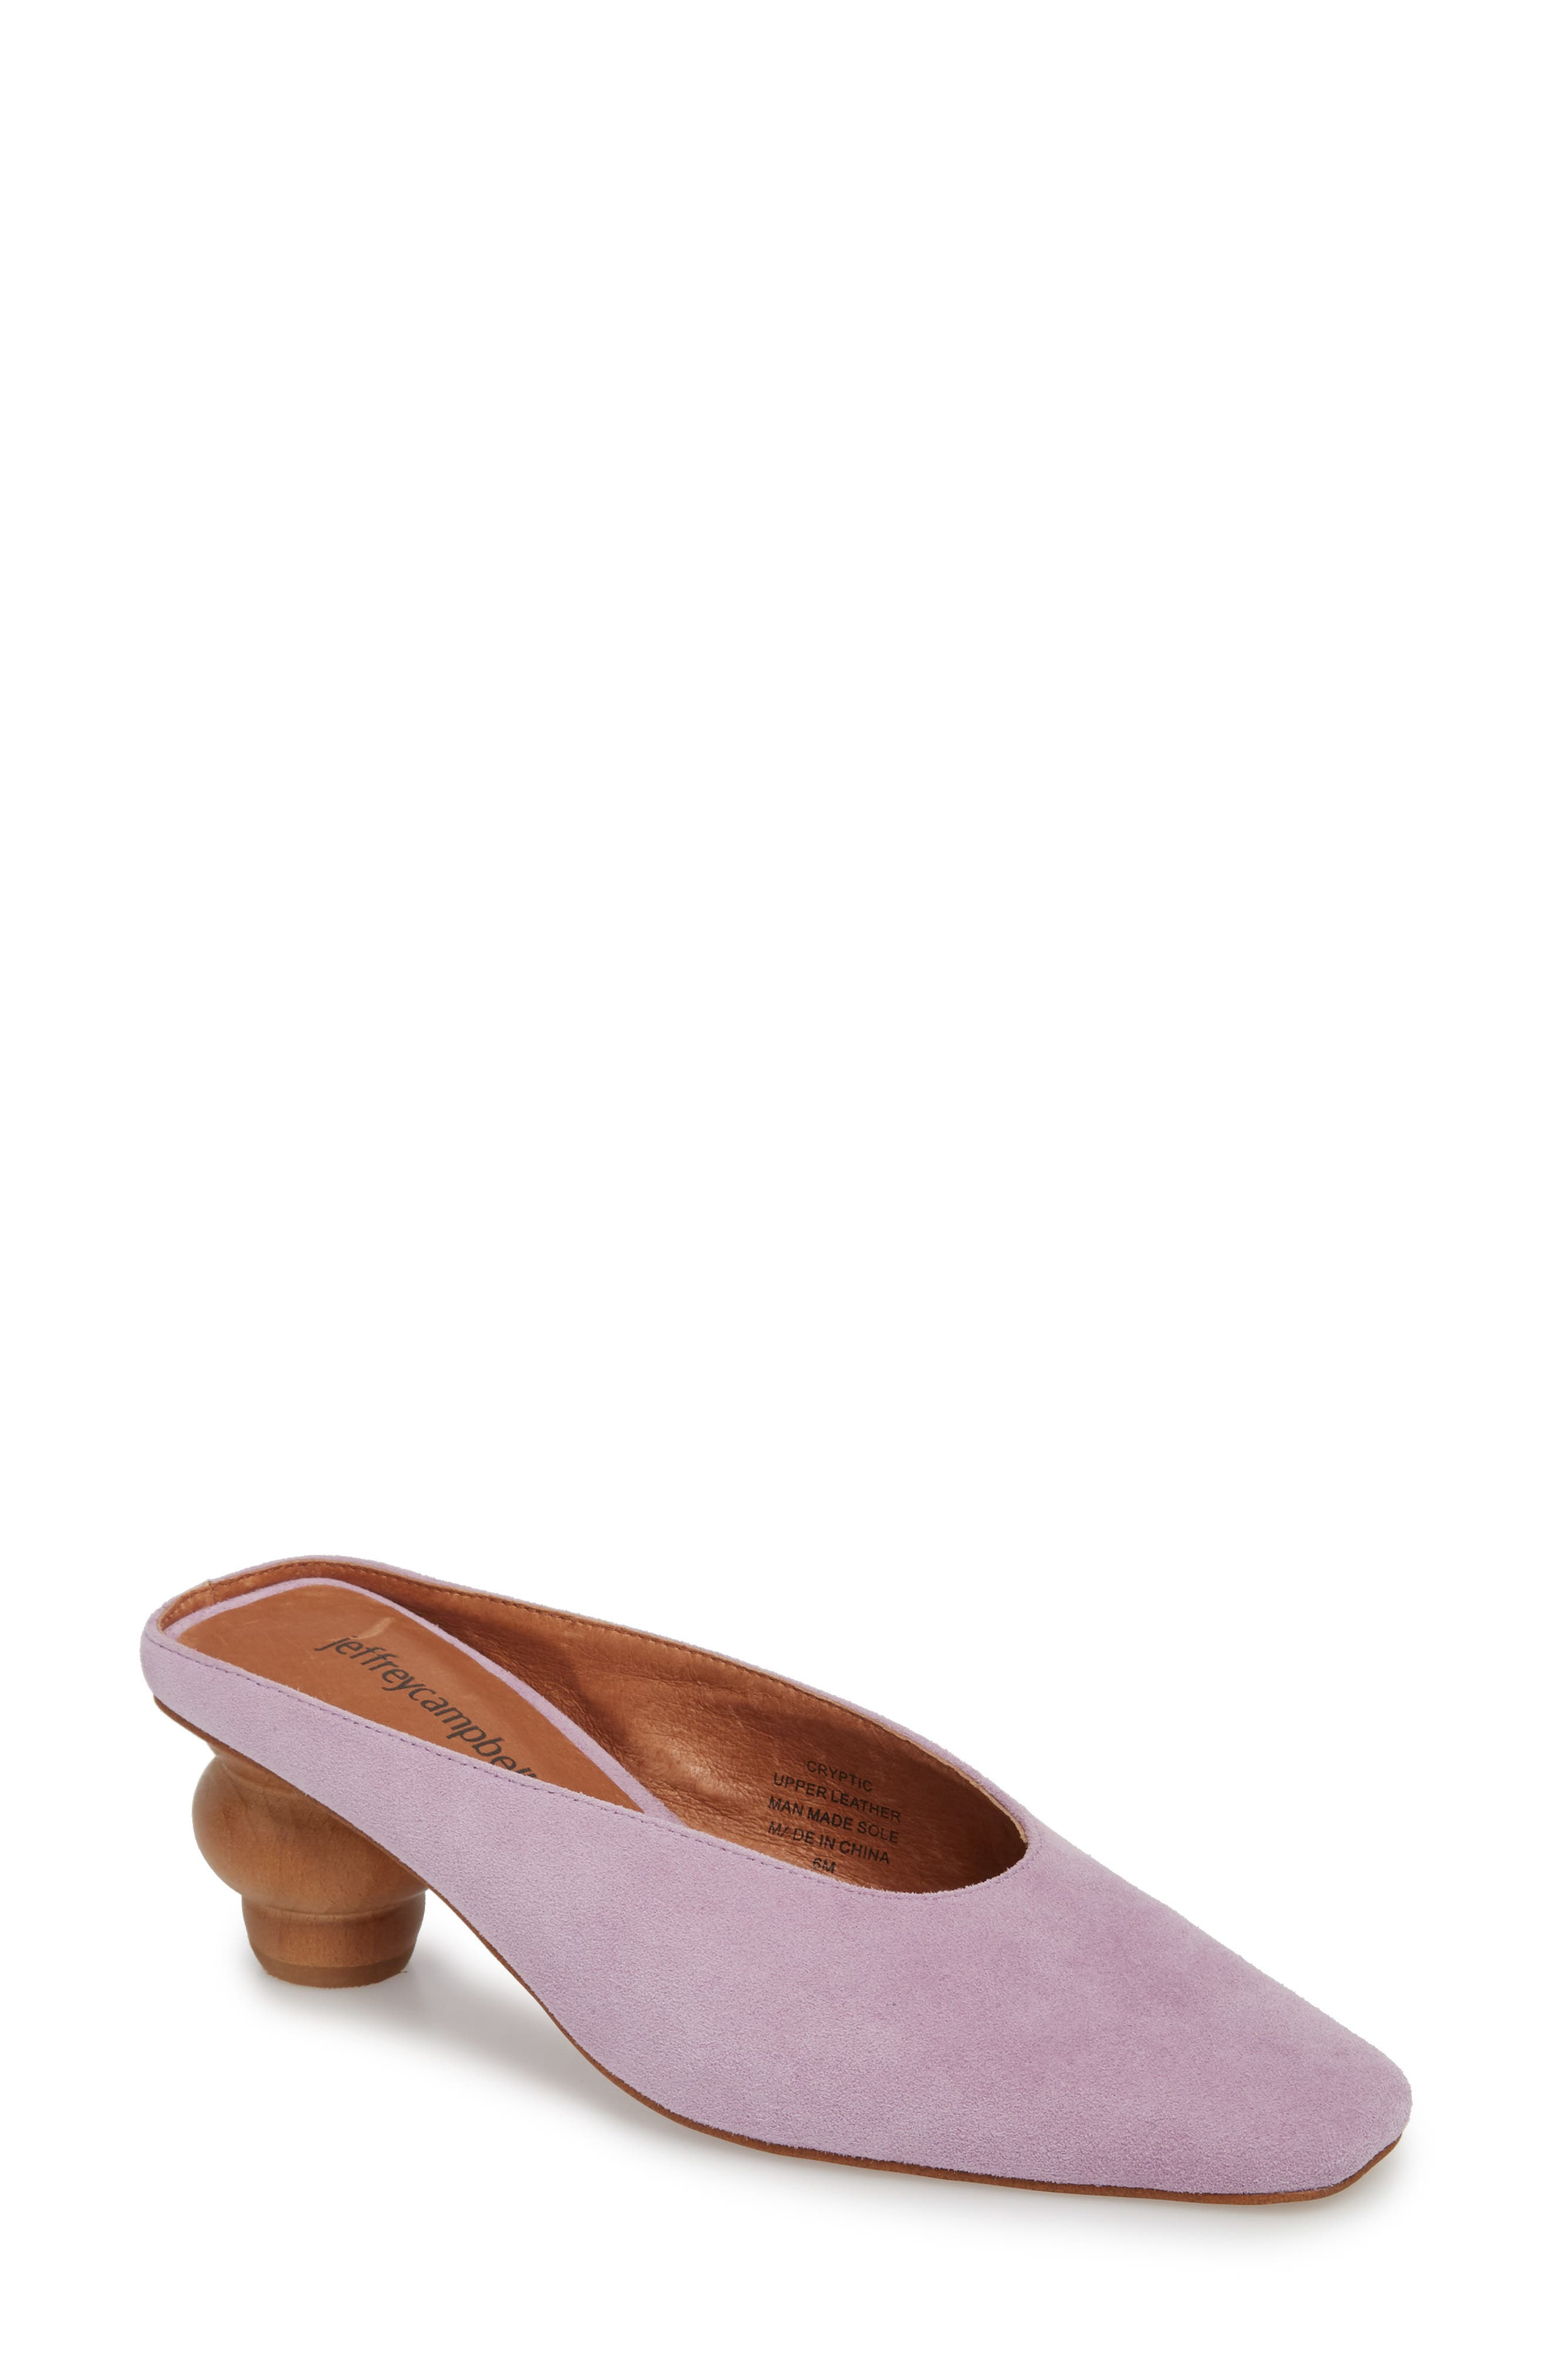 Jeffrey Campbell Cryptic Statement Heel Mule (Women)